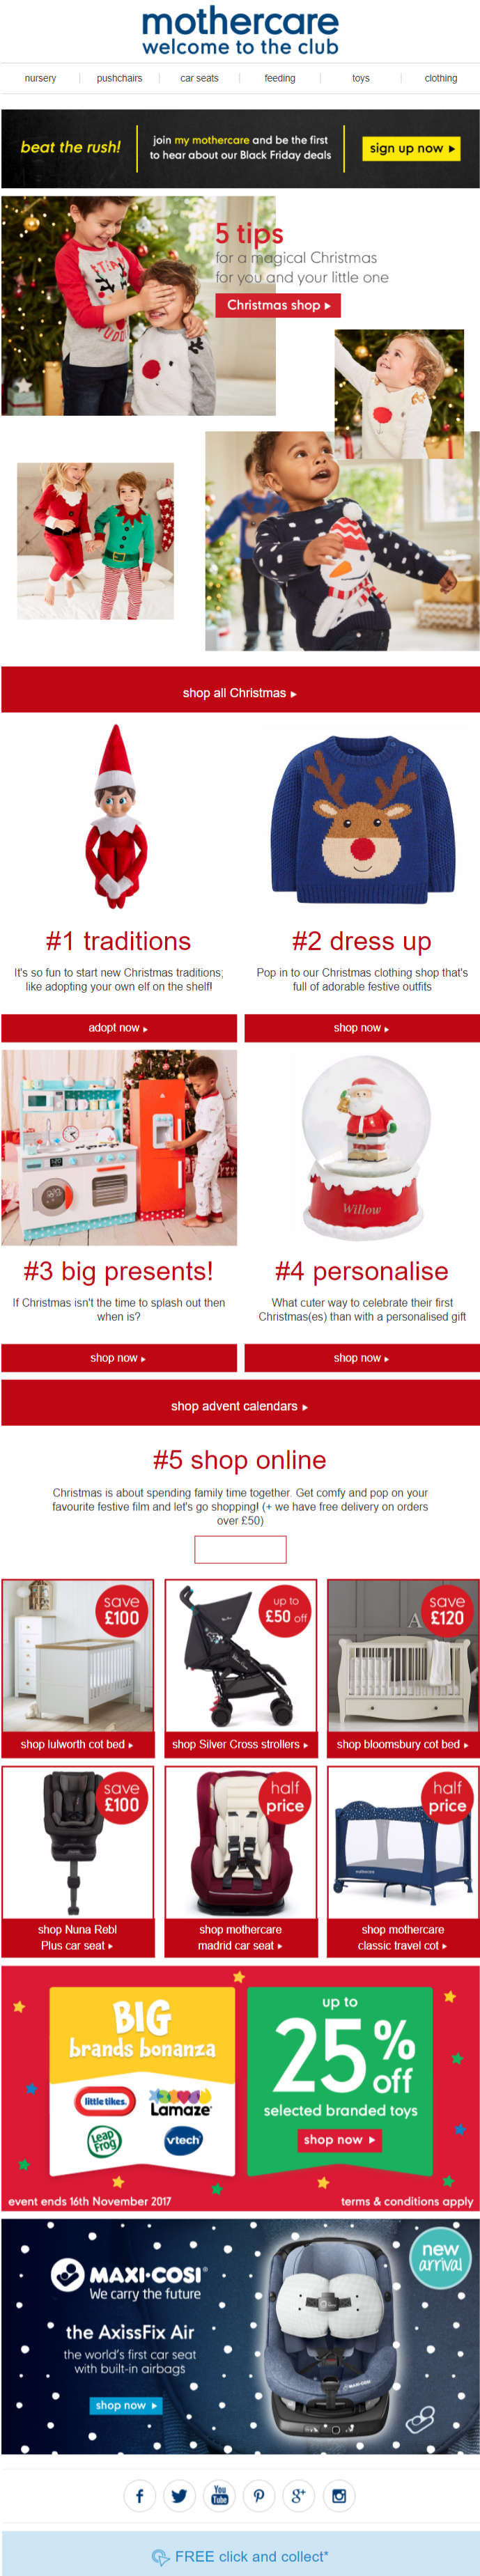 mothercare-top-tips-for-a-magical-christmas